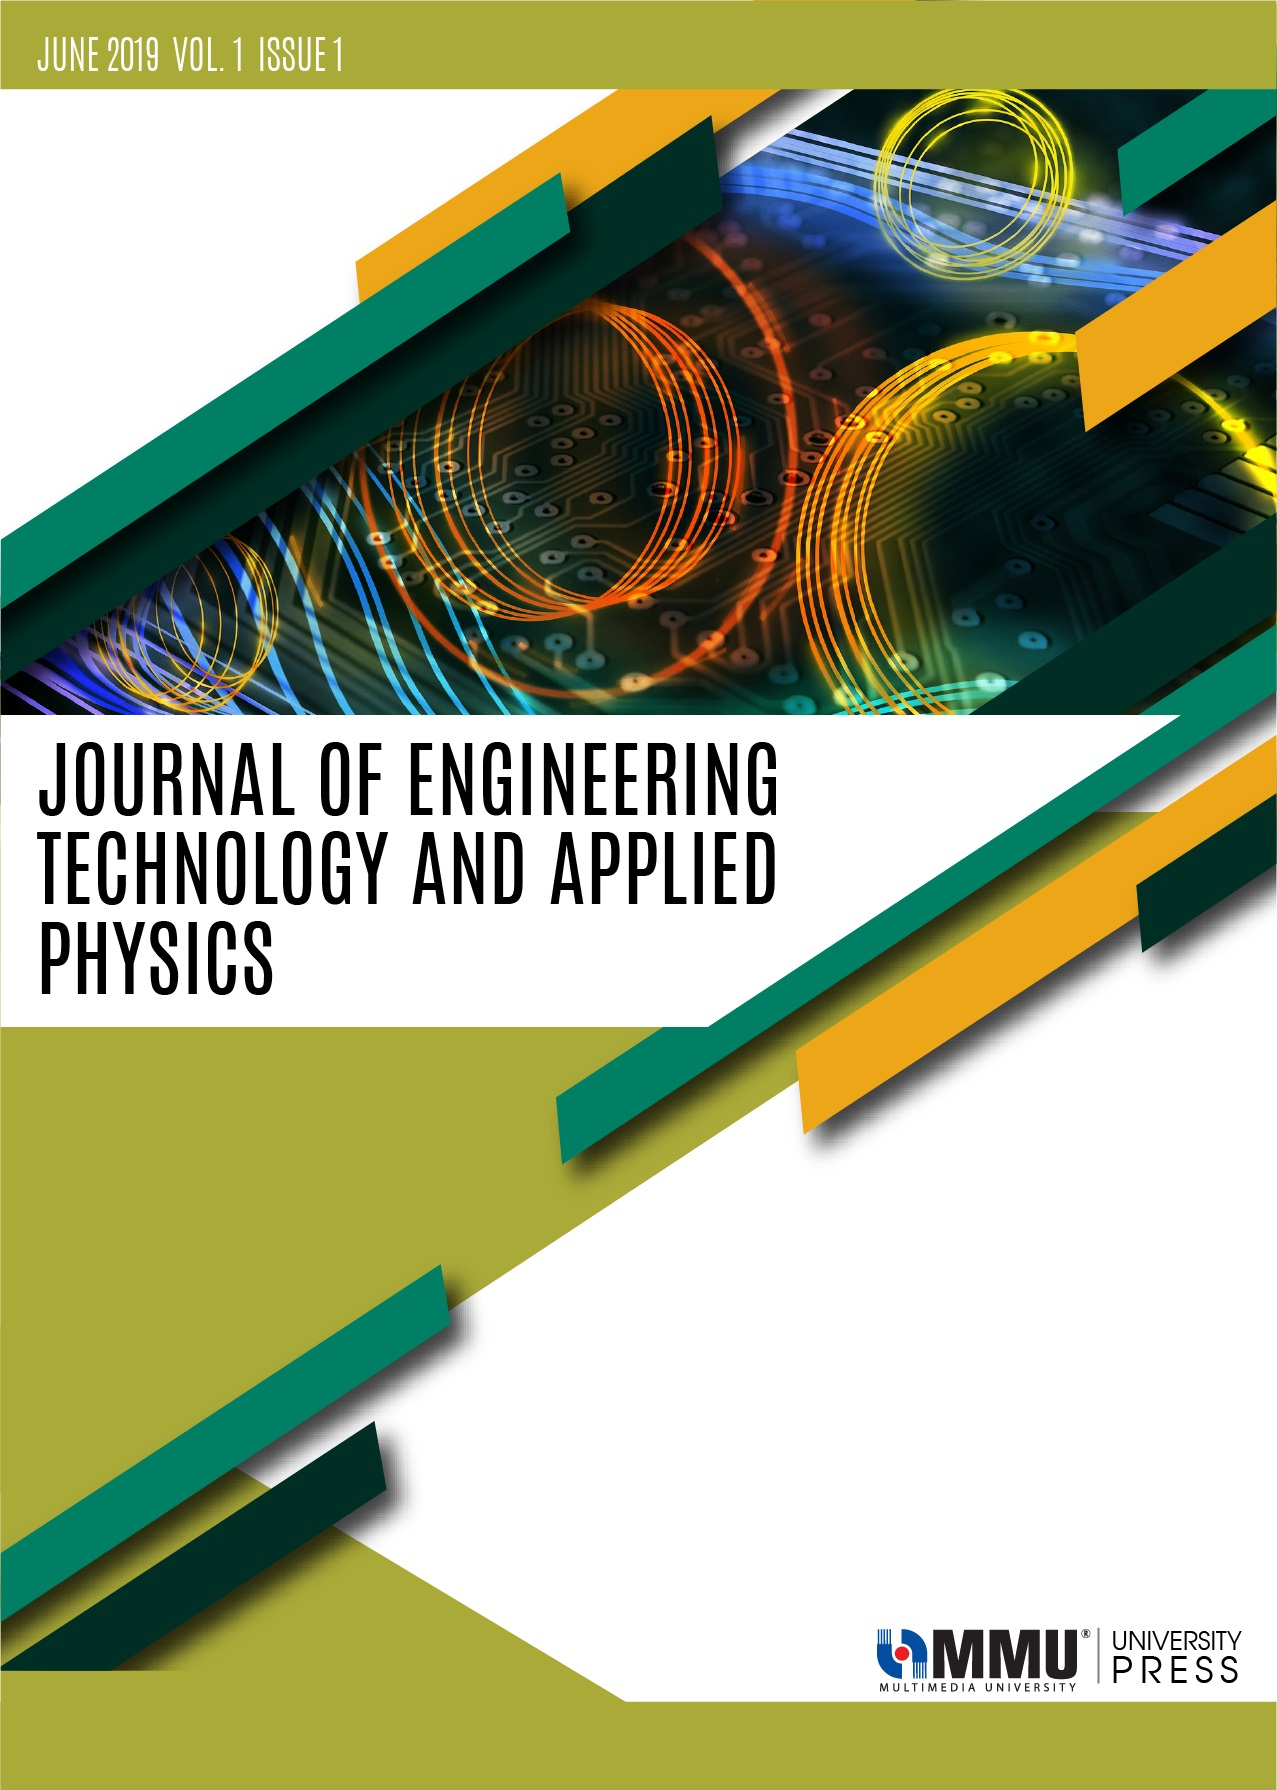 Journal of Engineering Technology and Applied Physics